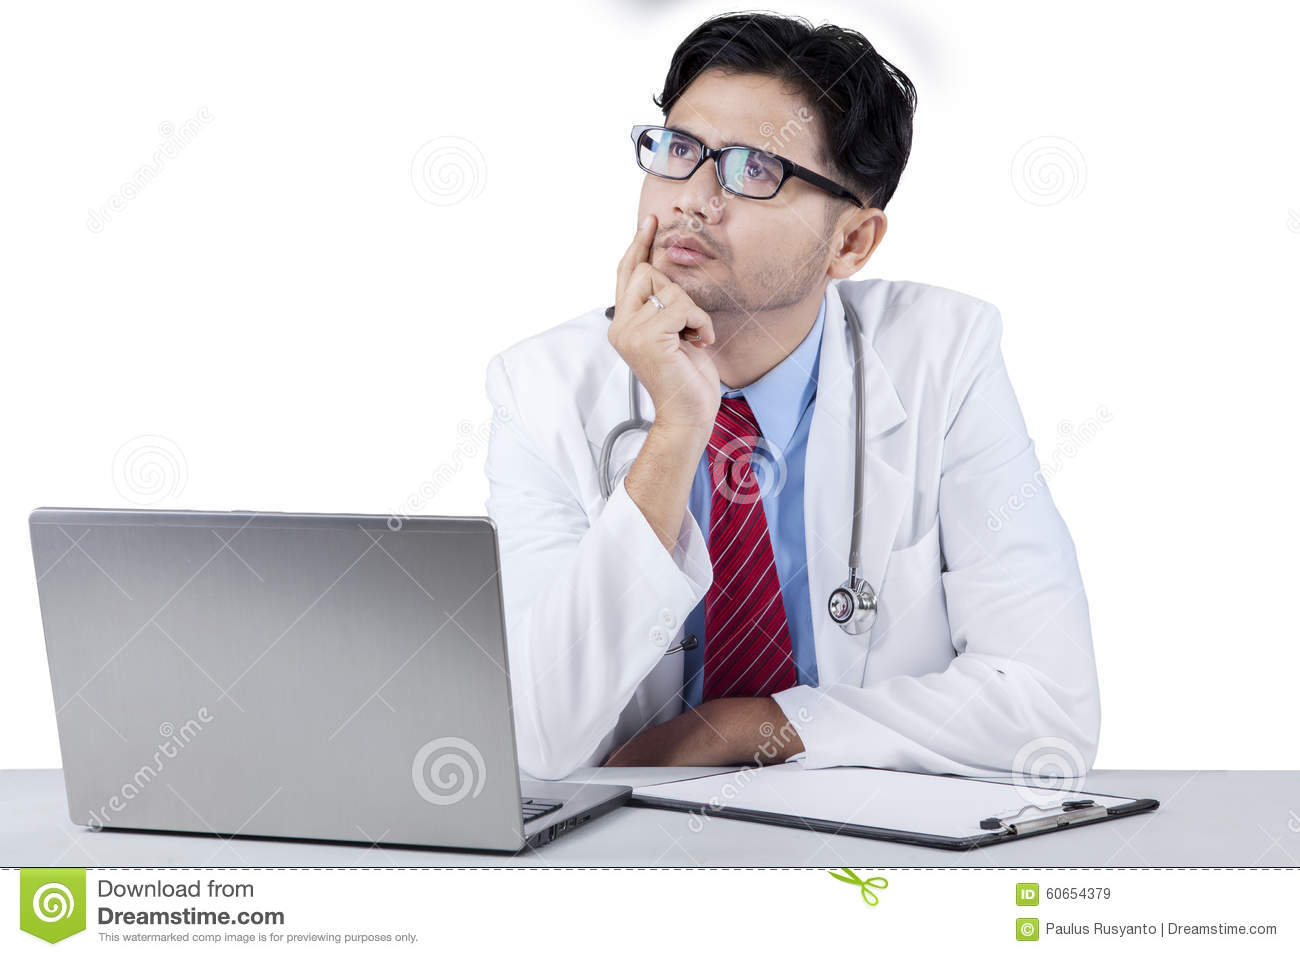 Thoughtful young doctor looking upward